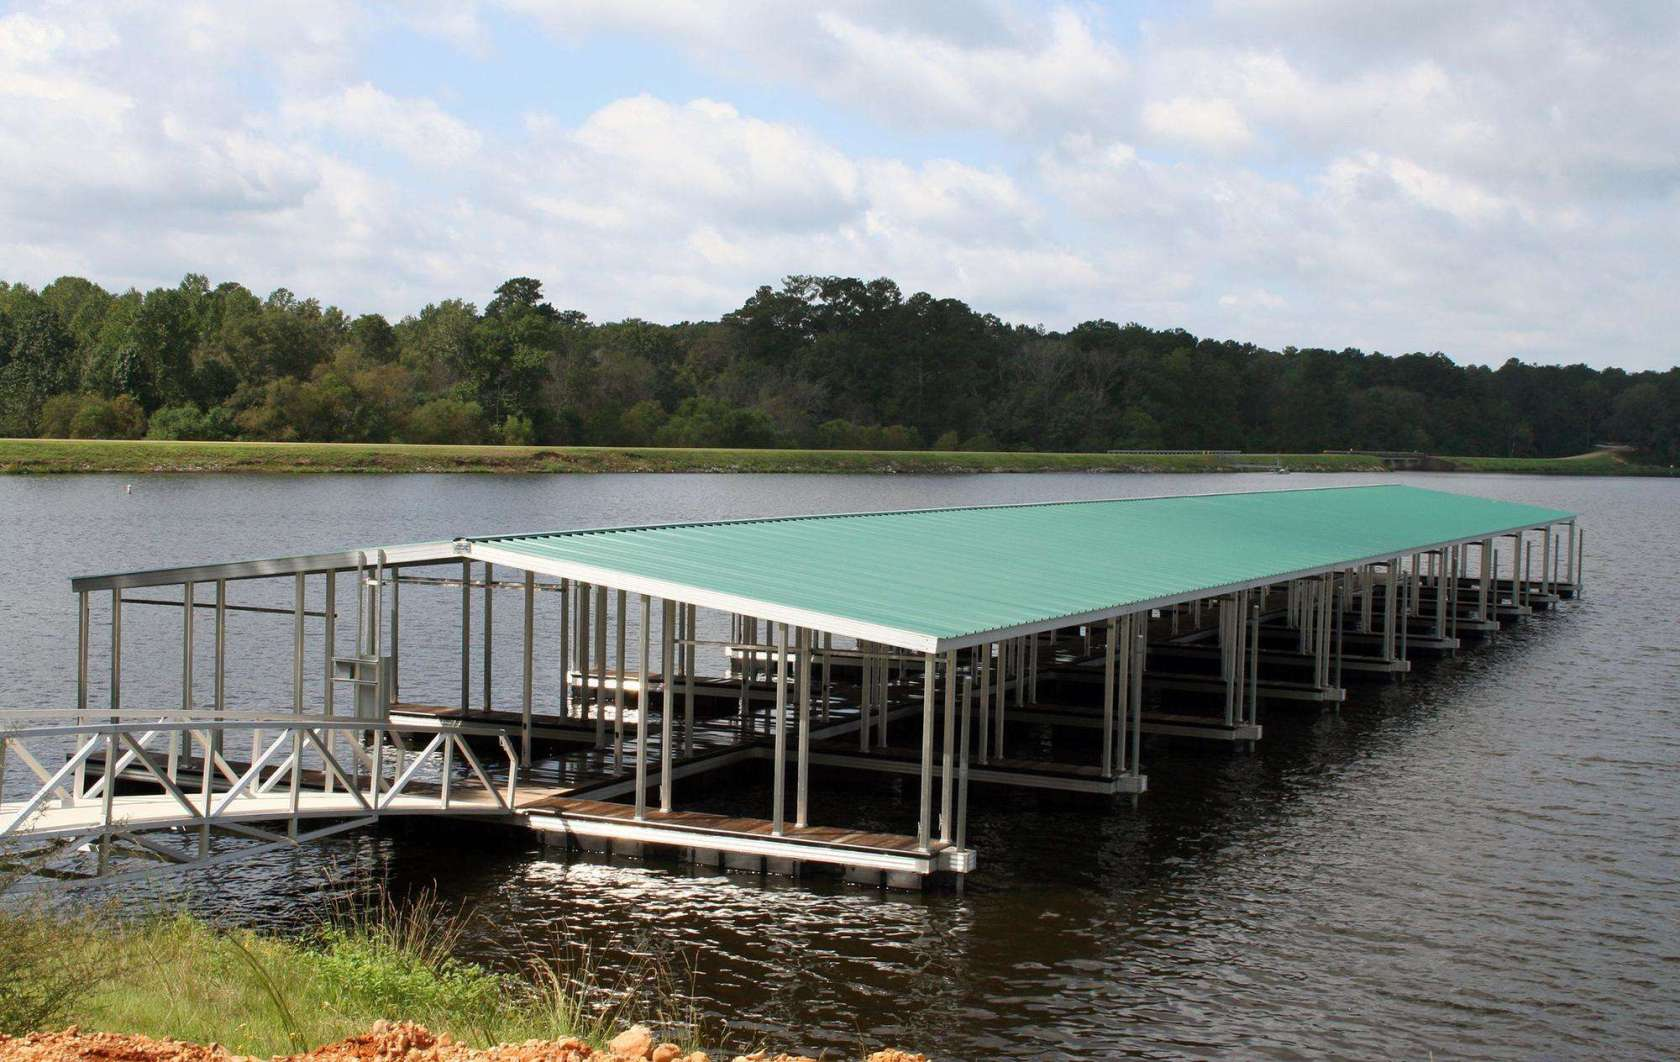 wahoo aluminum docks commercial marine construction at percy quinn state park 07 with green gable roof and aluminum gangway plus ipe decking